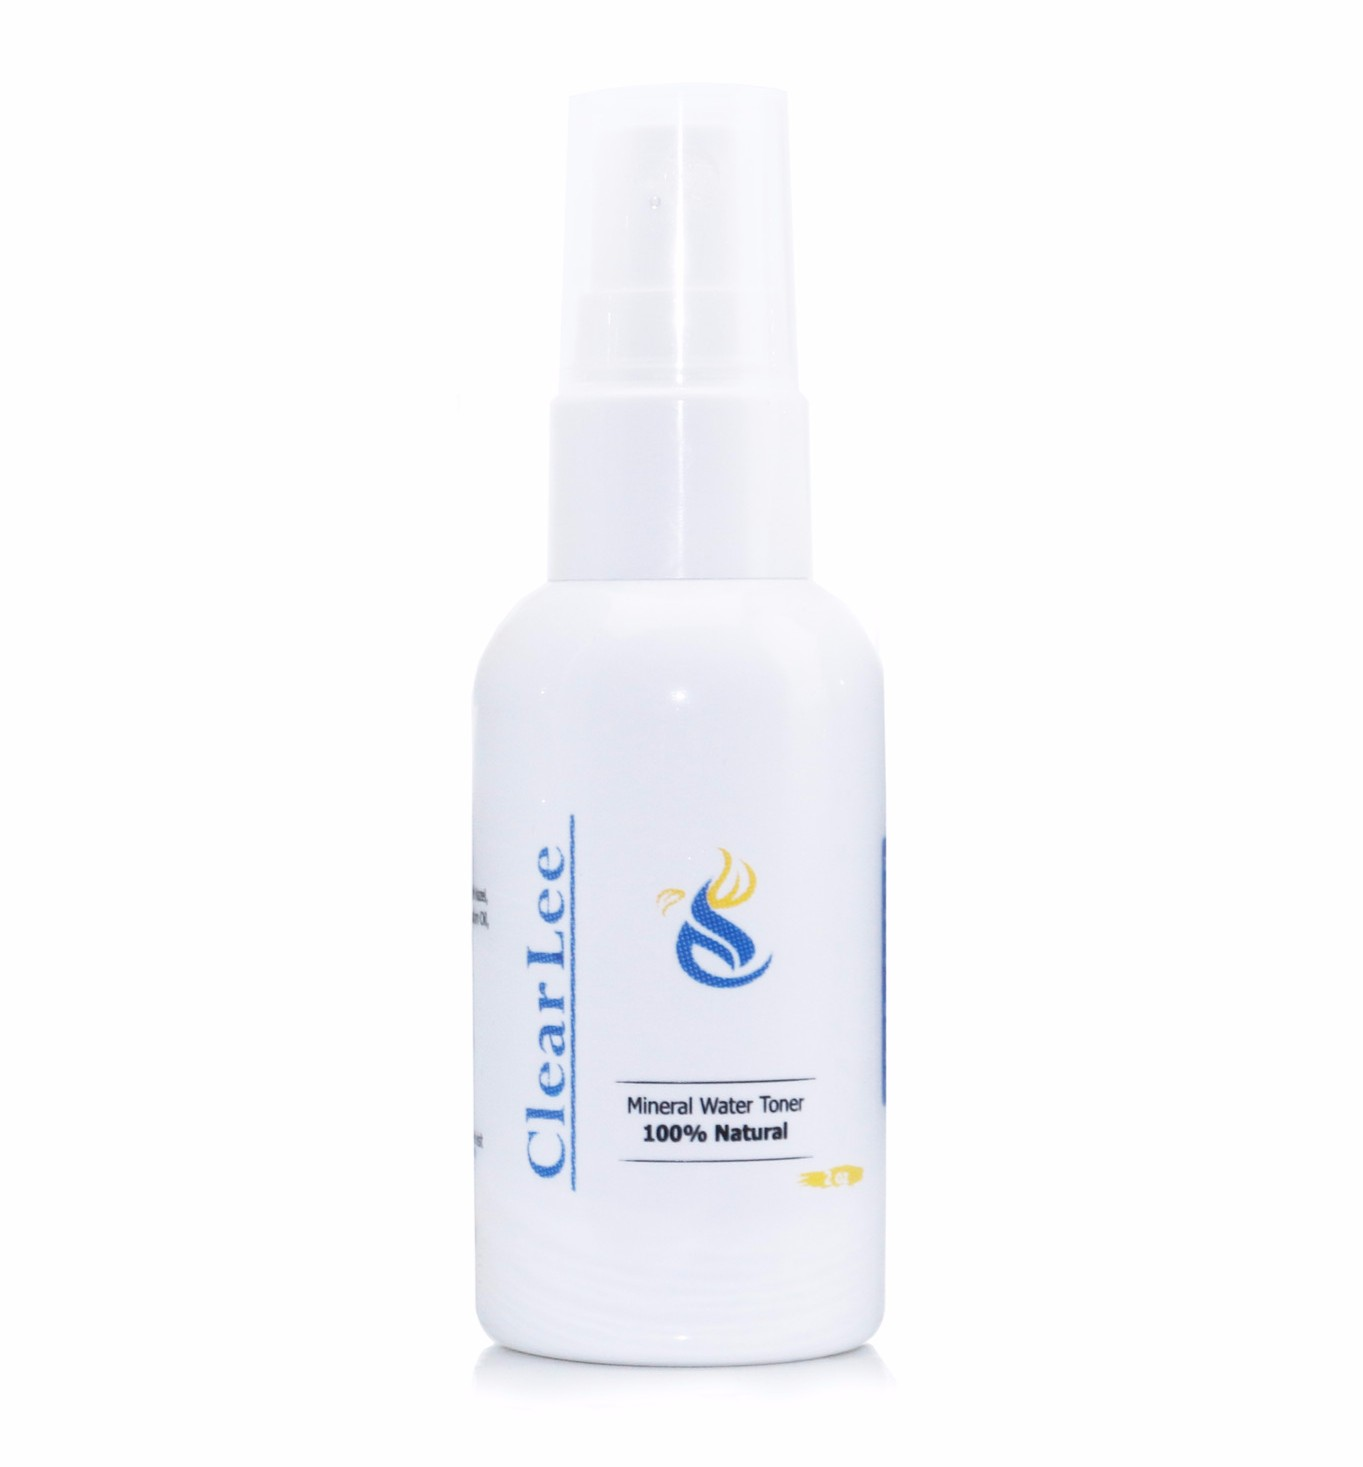 ClearLee mineral water toner